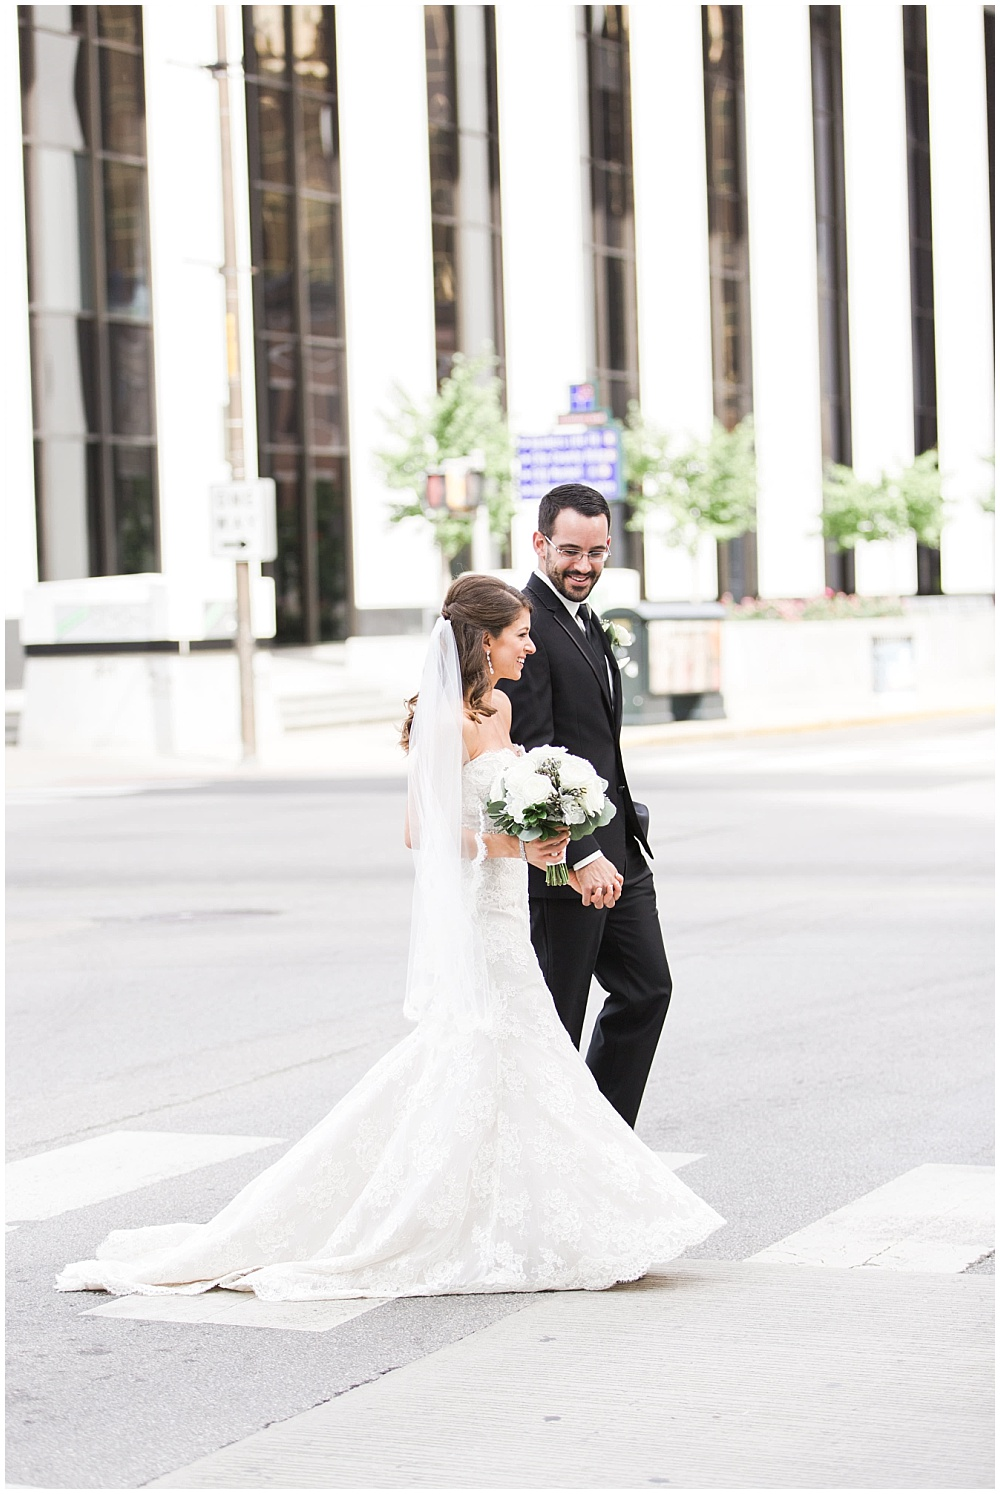 Bride and Groom walking through downtown streets | D'Amore Wedding by Ivan & Louise Images & Jessica Dum Wedding Coordination